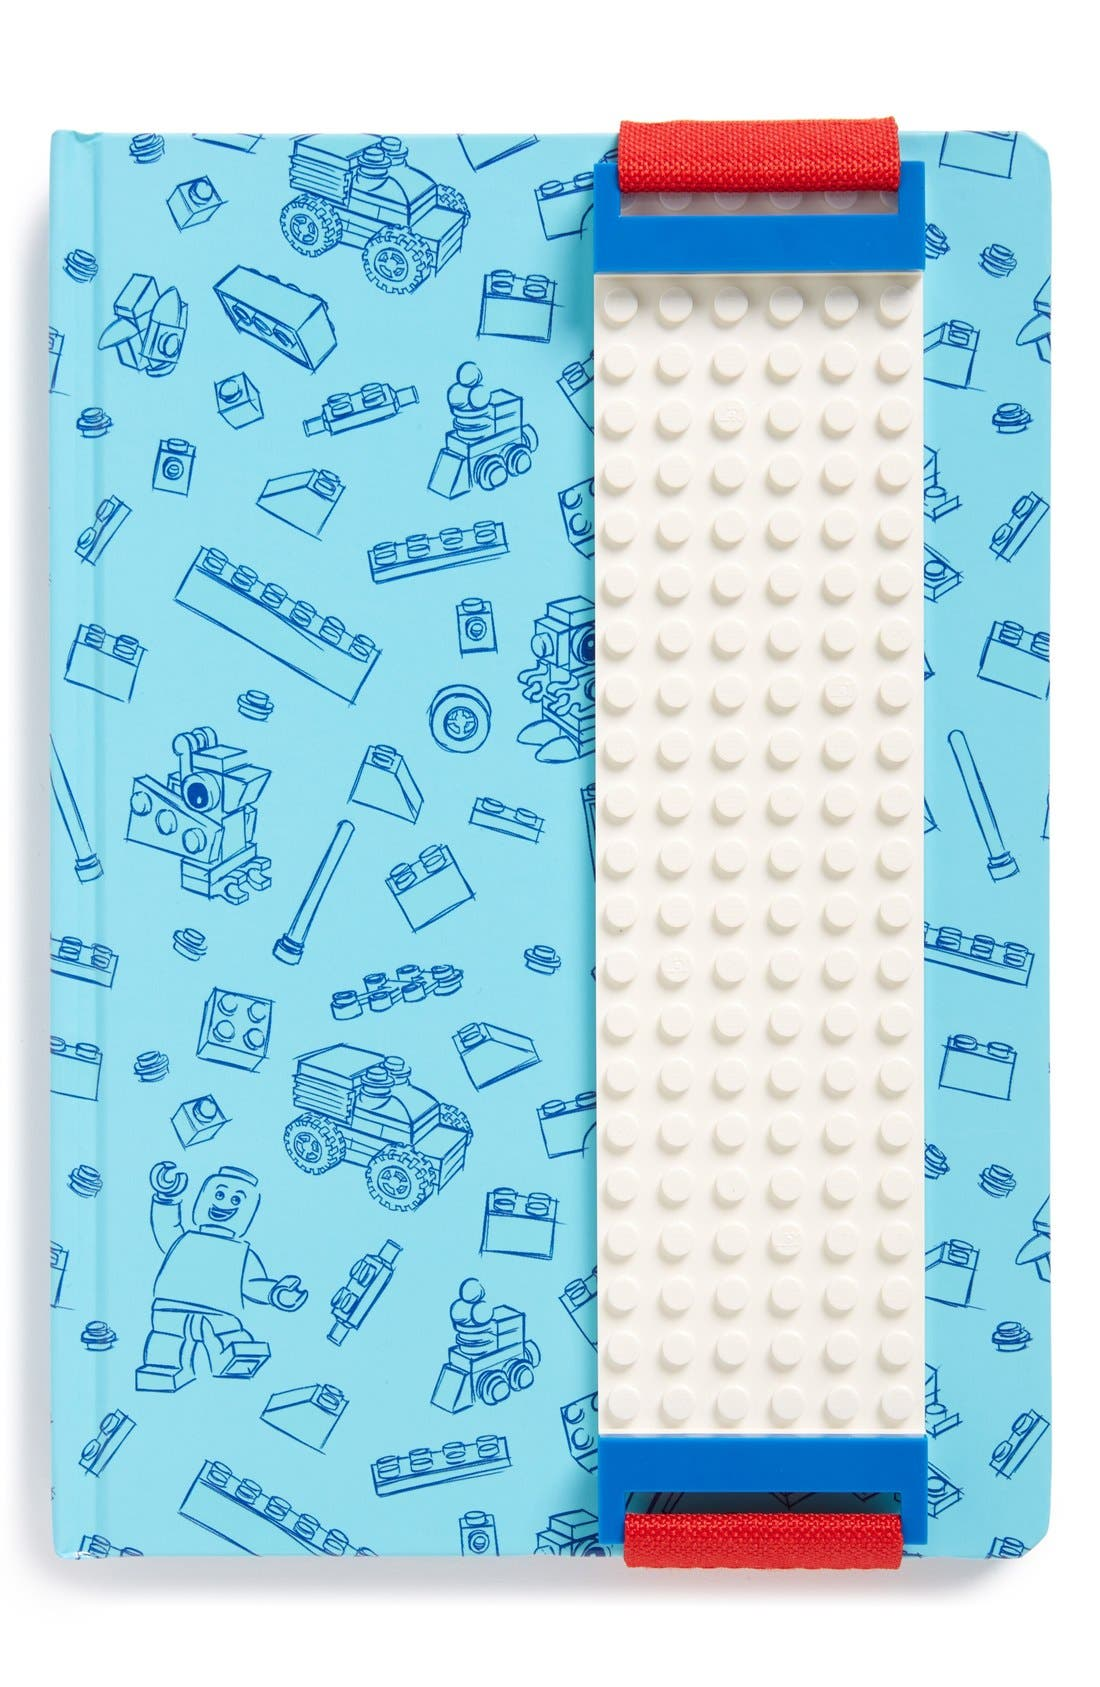 LEGO® Blue Journal with White Band